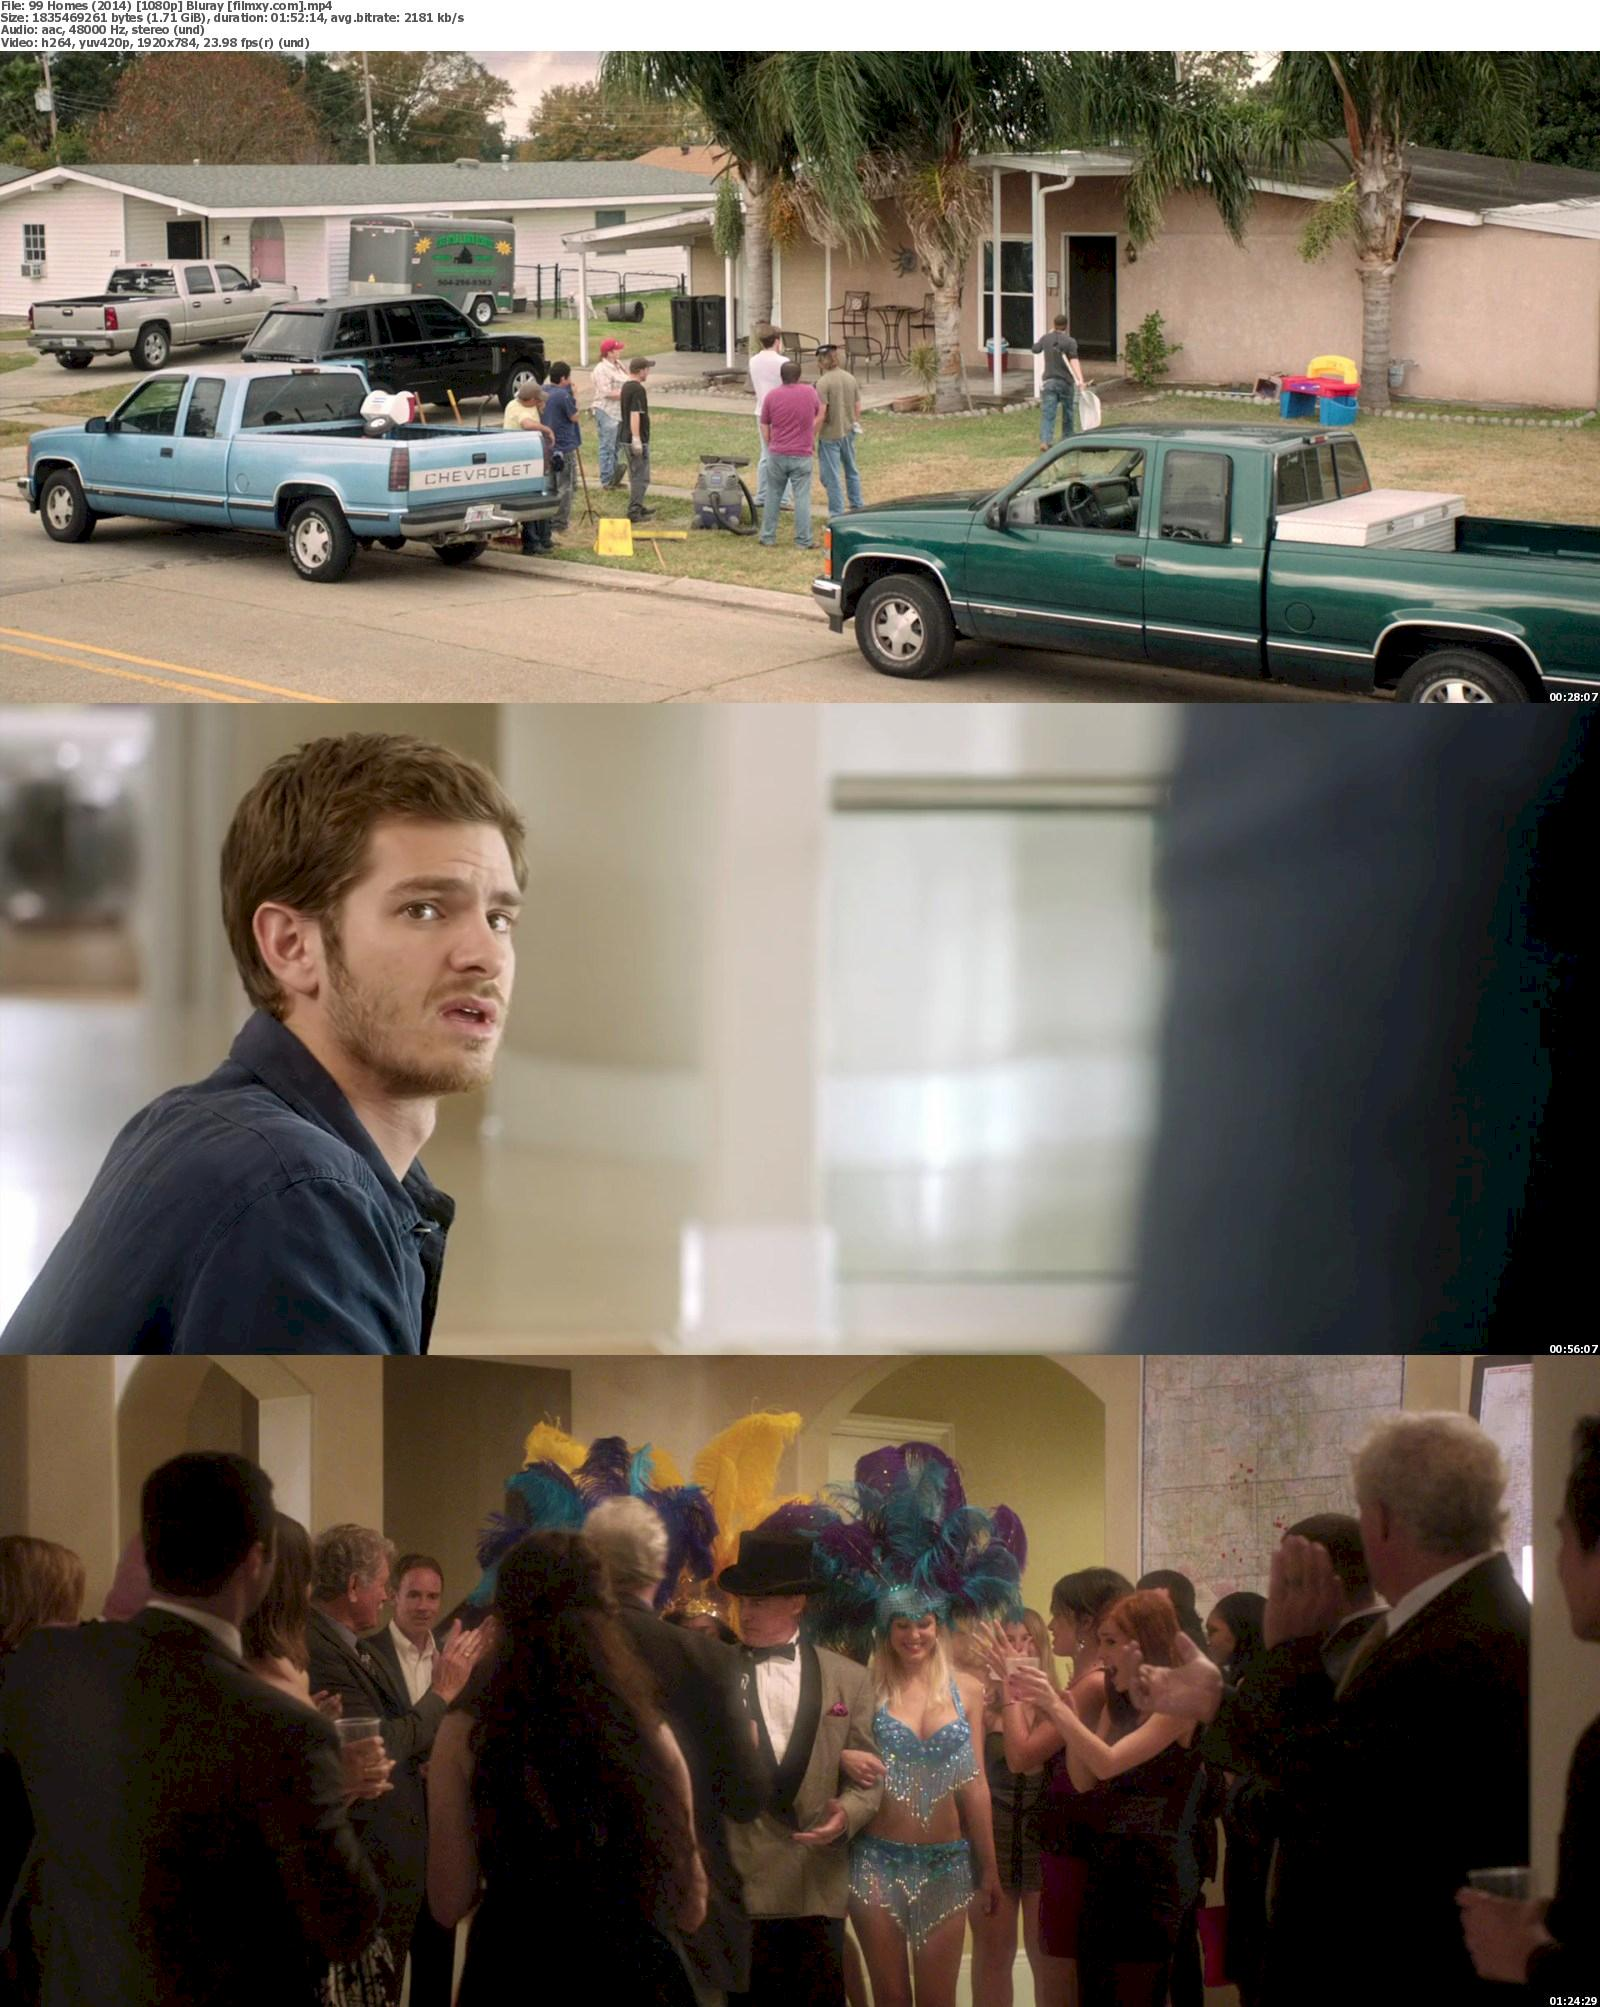 99 Homes (2014) 720p & 1080p Bluray Free Download 1080p Screenshot